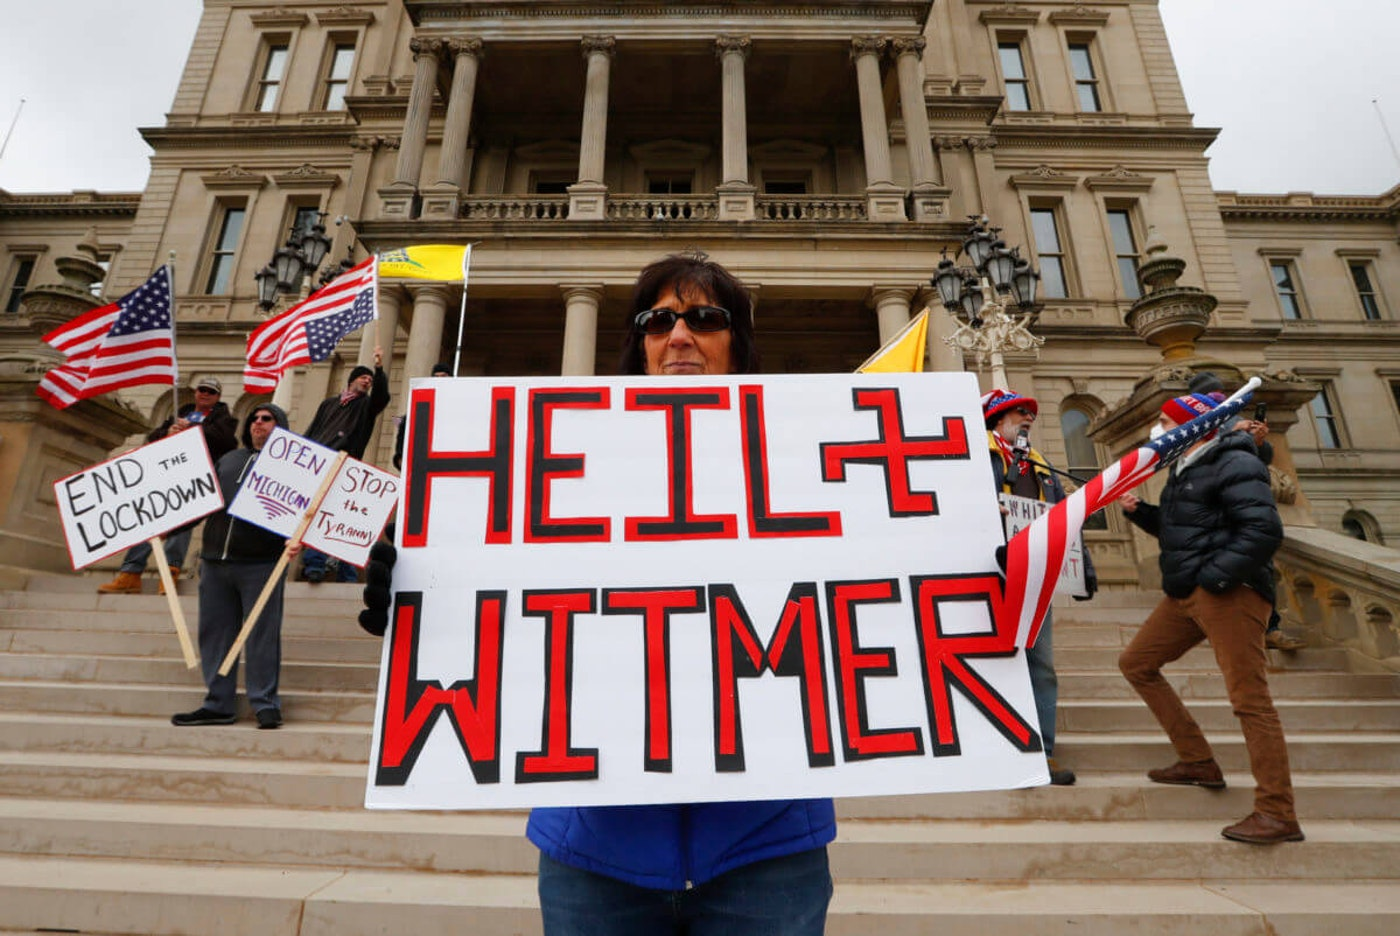 Dawn Perreca protest in Lansing, Mich., Wednesday, April 15, 2020. Flag-waving, honking protesters drove past the Michigan Capitol on Wednesday to show their displeasure with Gov. Gretchen Whitmer's orders to keep people at home and businesses locked during the new coronavirus COVID-19 outbreak. (AP Photo/Paul Sancya)